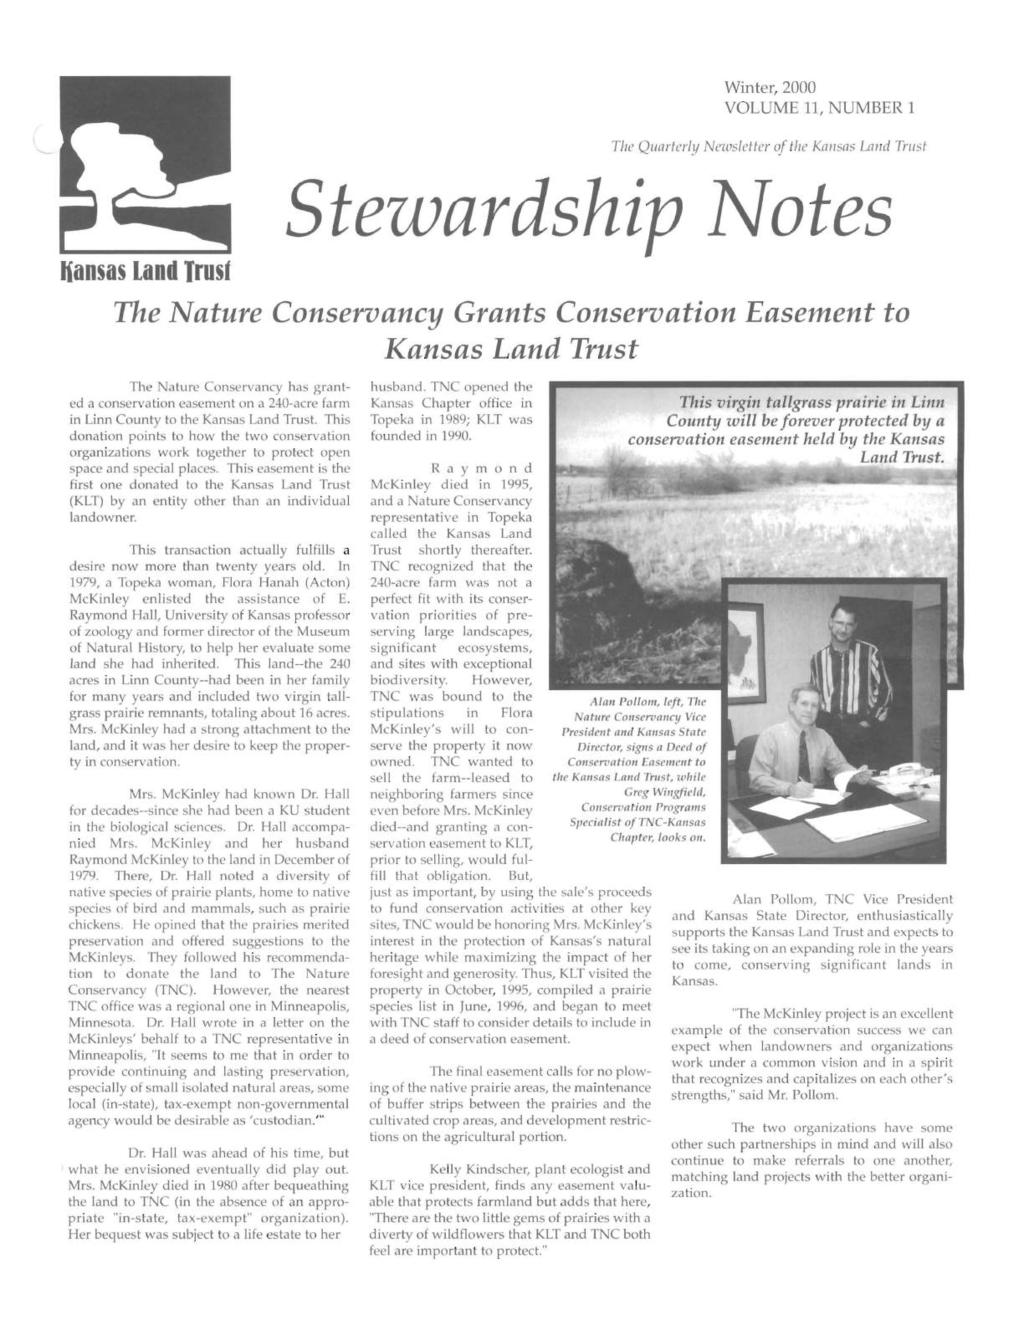 Winter, 2000 VOLUME 11, NUMBER 1 The Quarterly Newsletter of the Kallsas Land Trust Stezvardship ~otes Kansas Land Trust The Nature Conservancy Grants Conservation Easement to Kansas Land Trust The